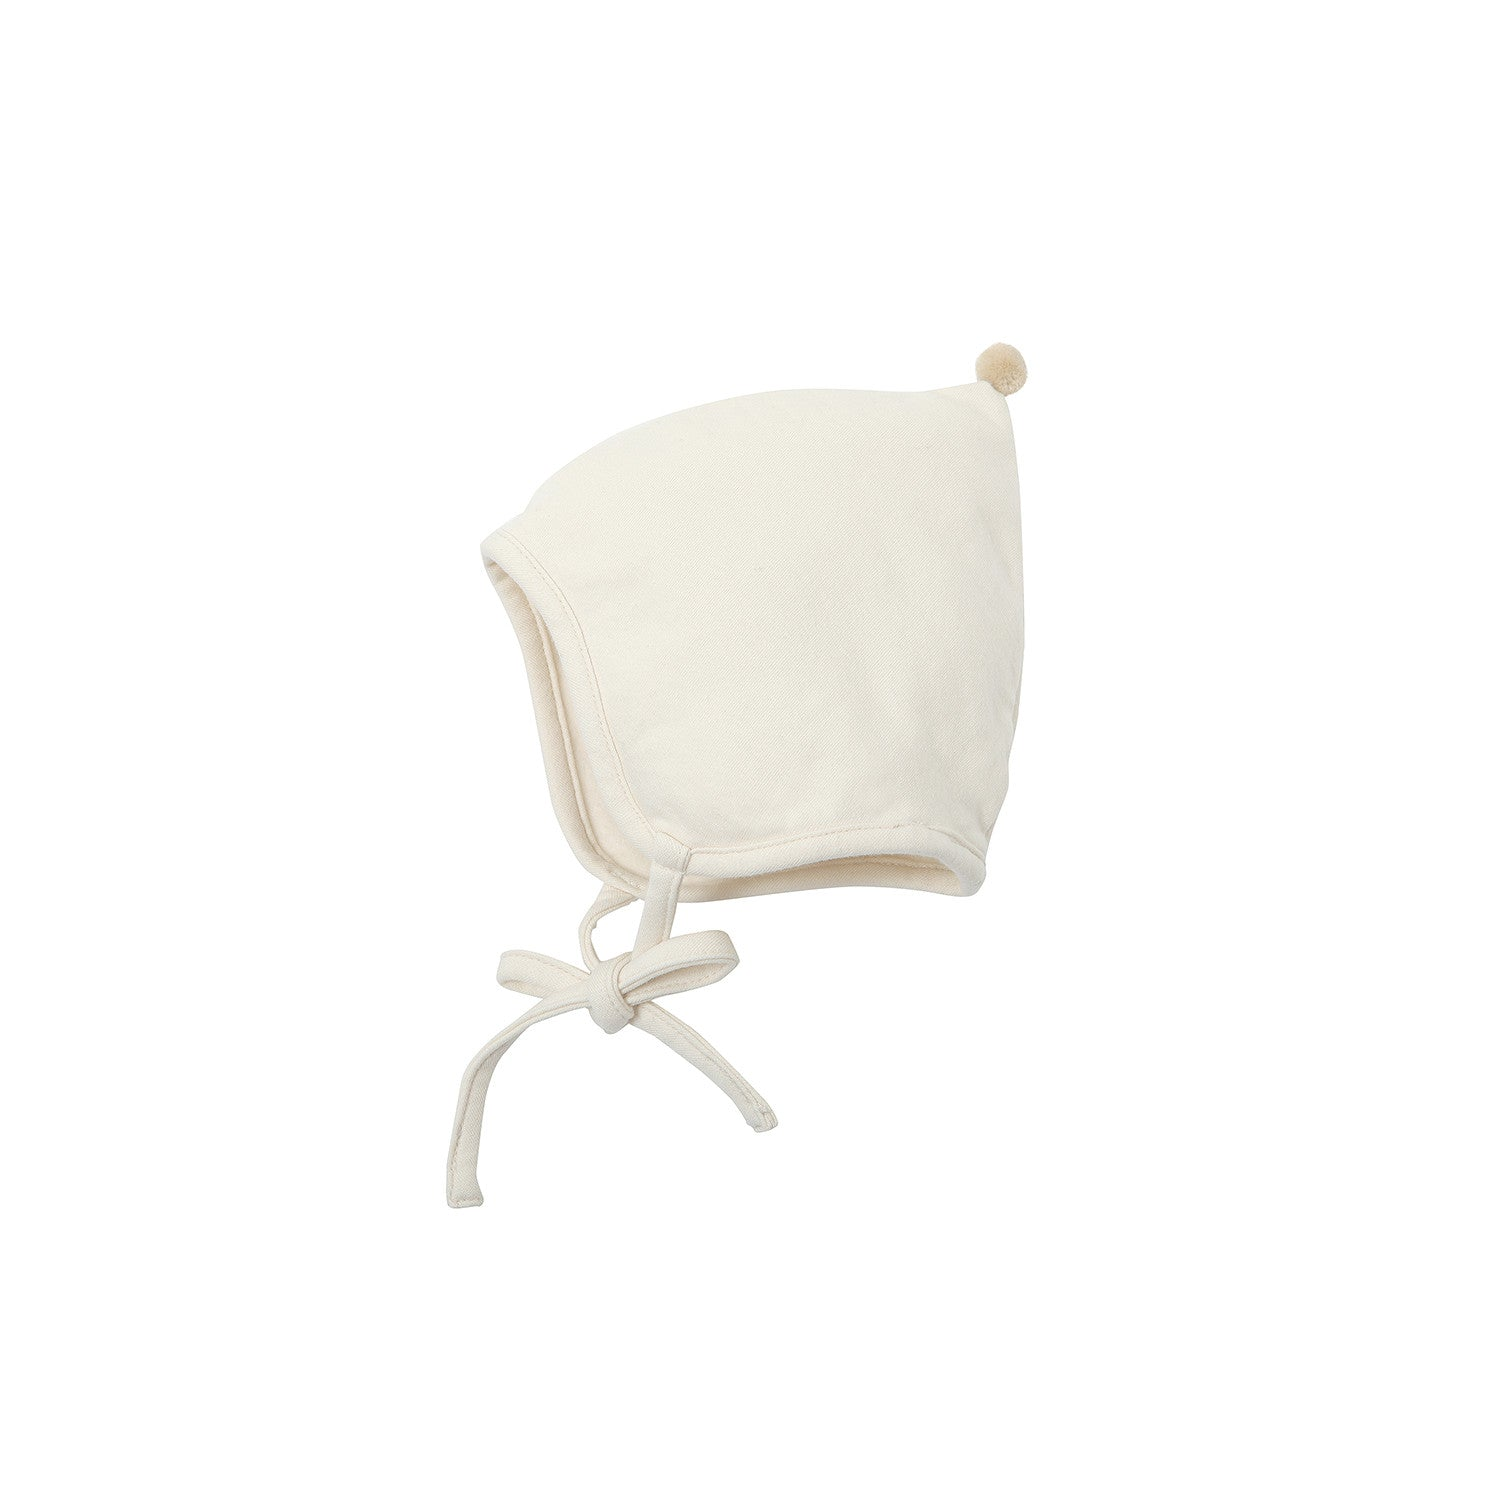 Bene Bene Cream Conical Bell Hat - Ladida